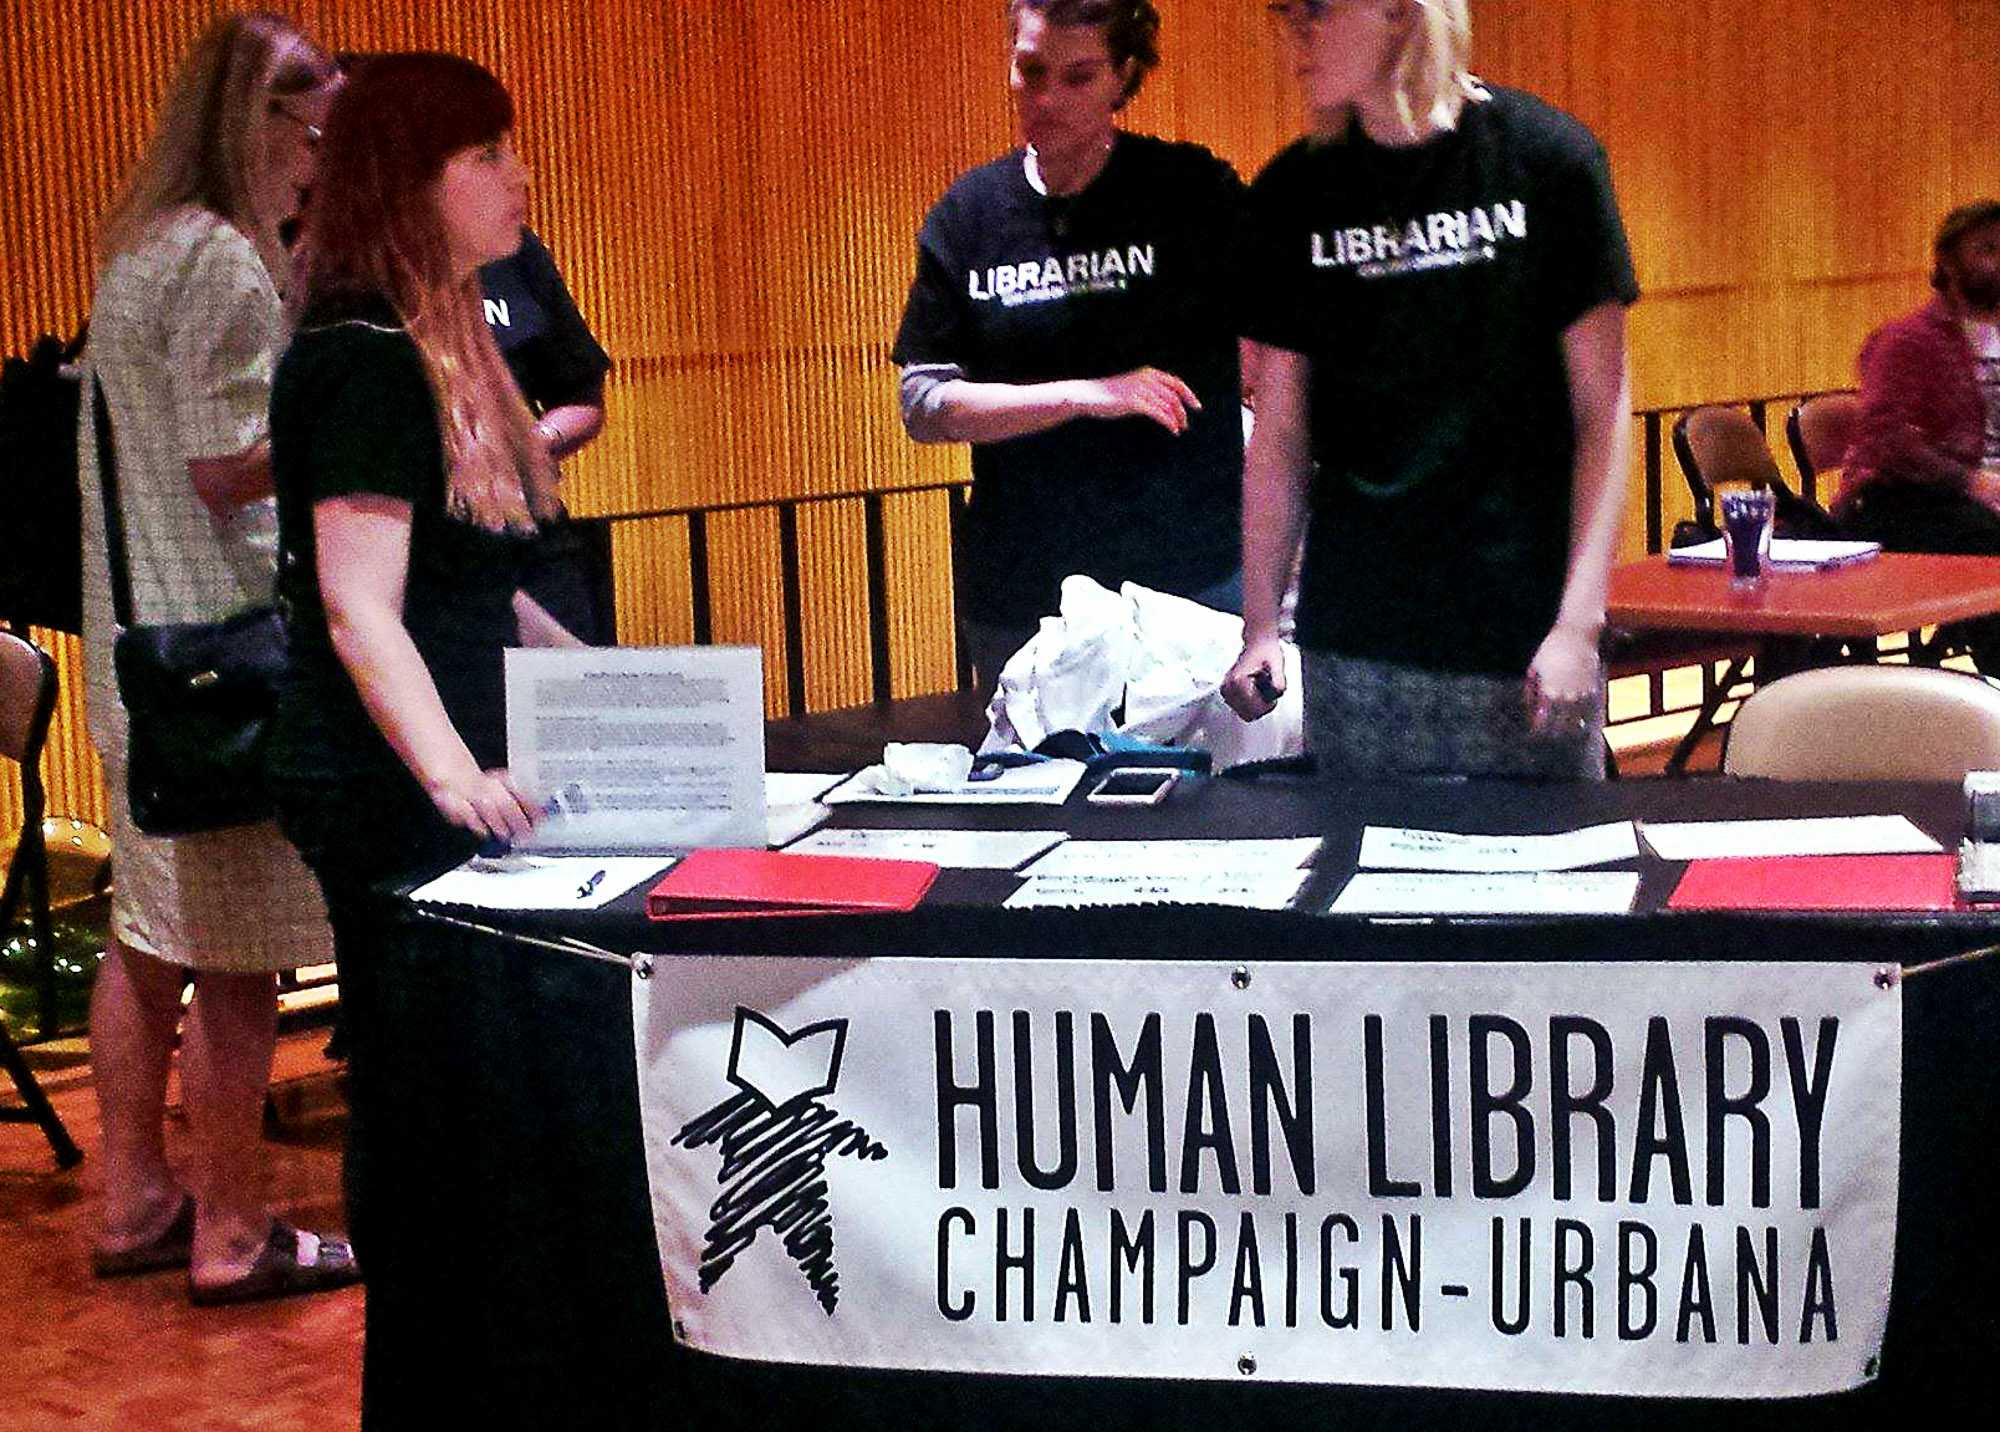 Visitors attend the Human Library event as a part of the Pygmalion Festival at the Krannert Center for Performing Arts.